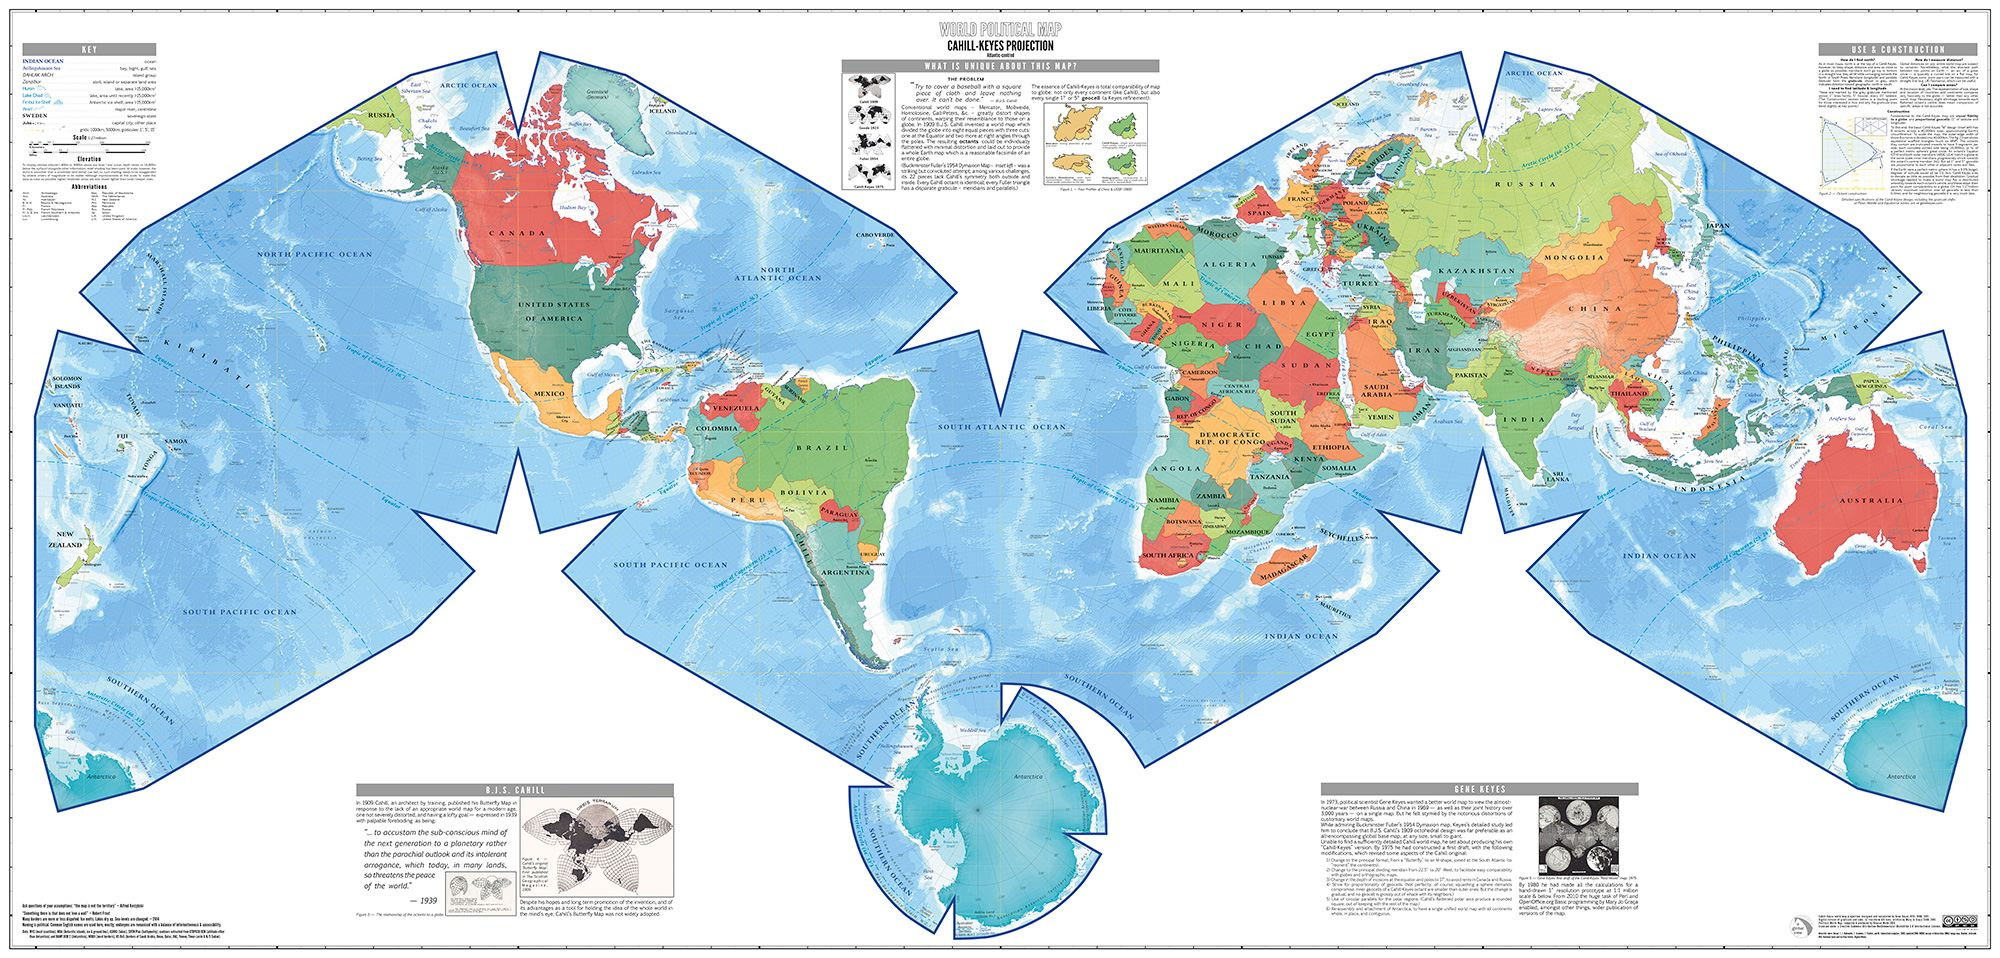 Cahill-Keyes World Map Poster